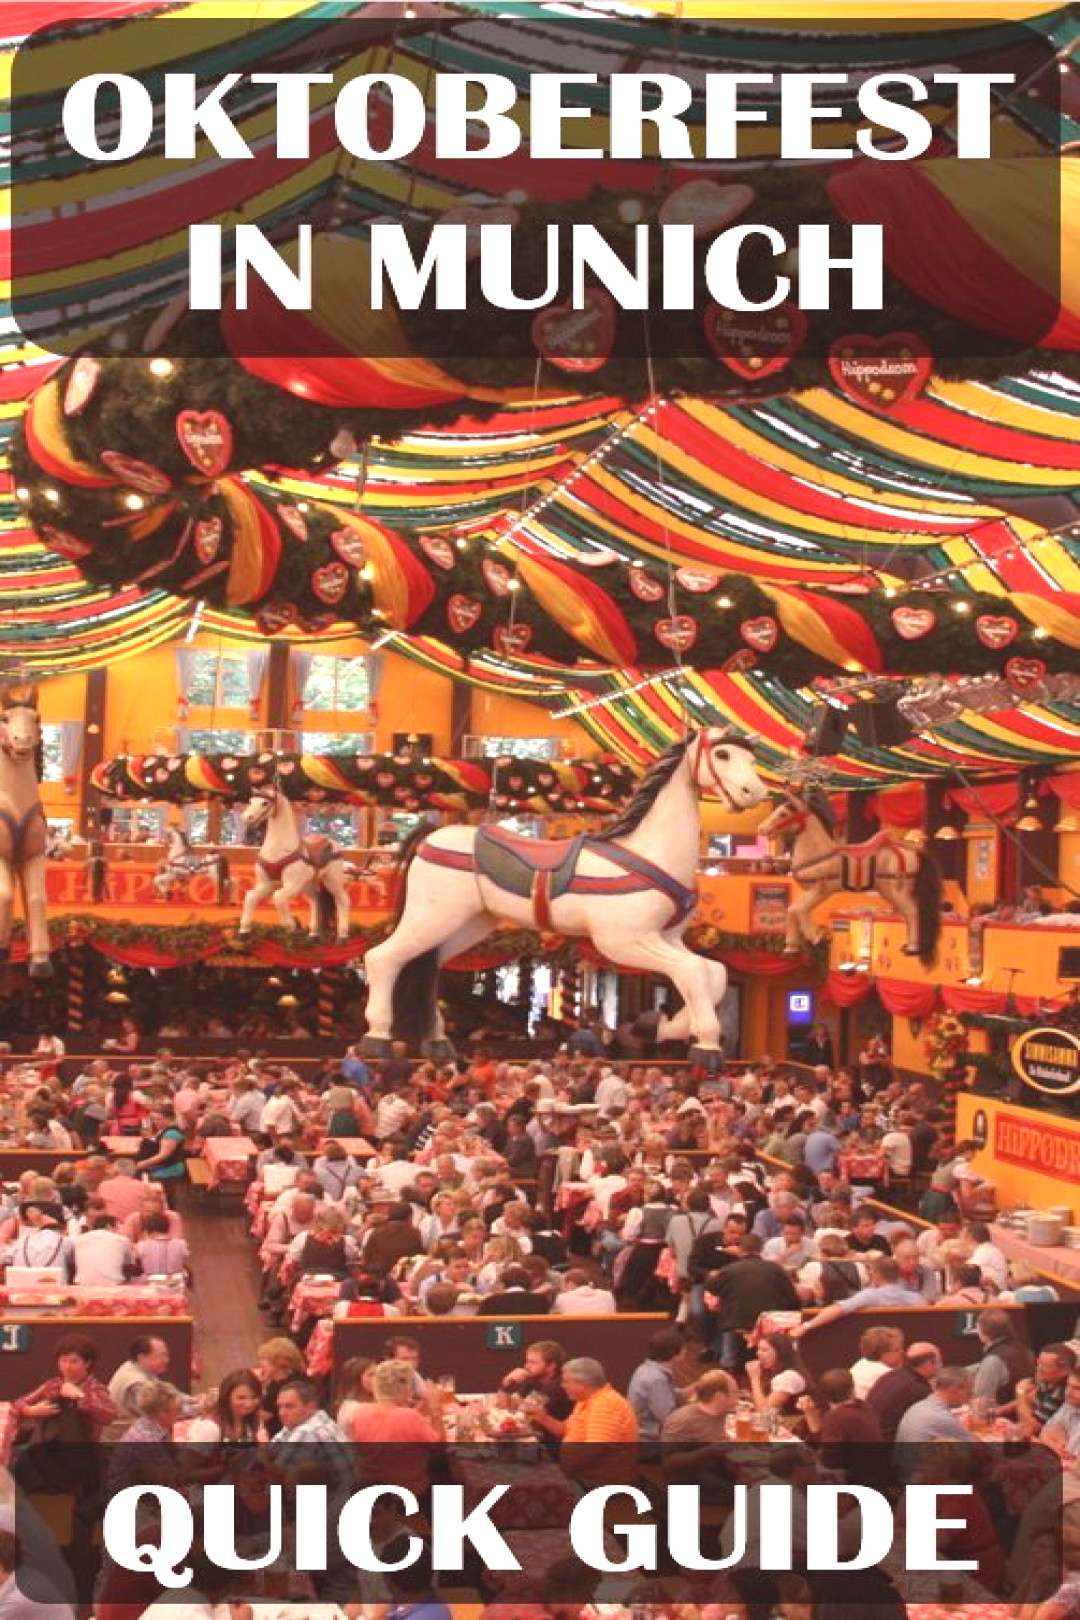 Octoberfest in Munich It was the perfect moment as we sat at the table eating the best chicken with